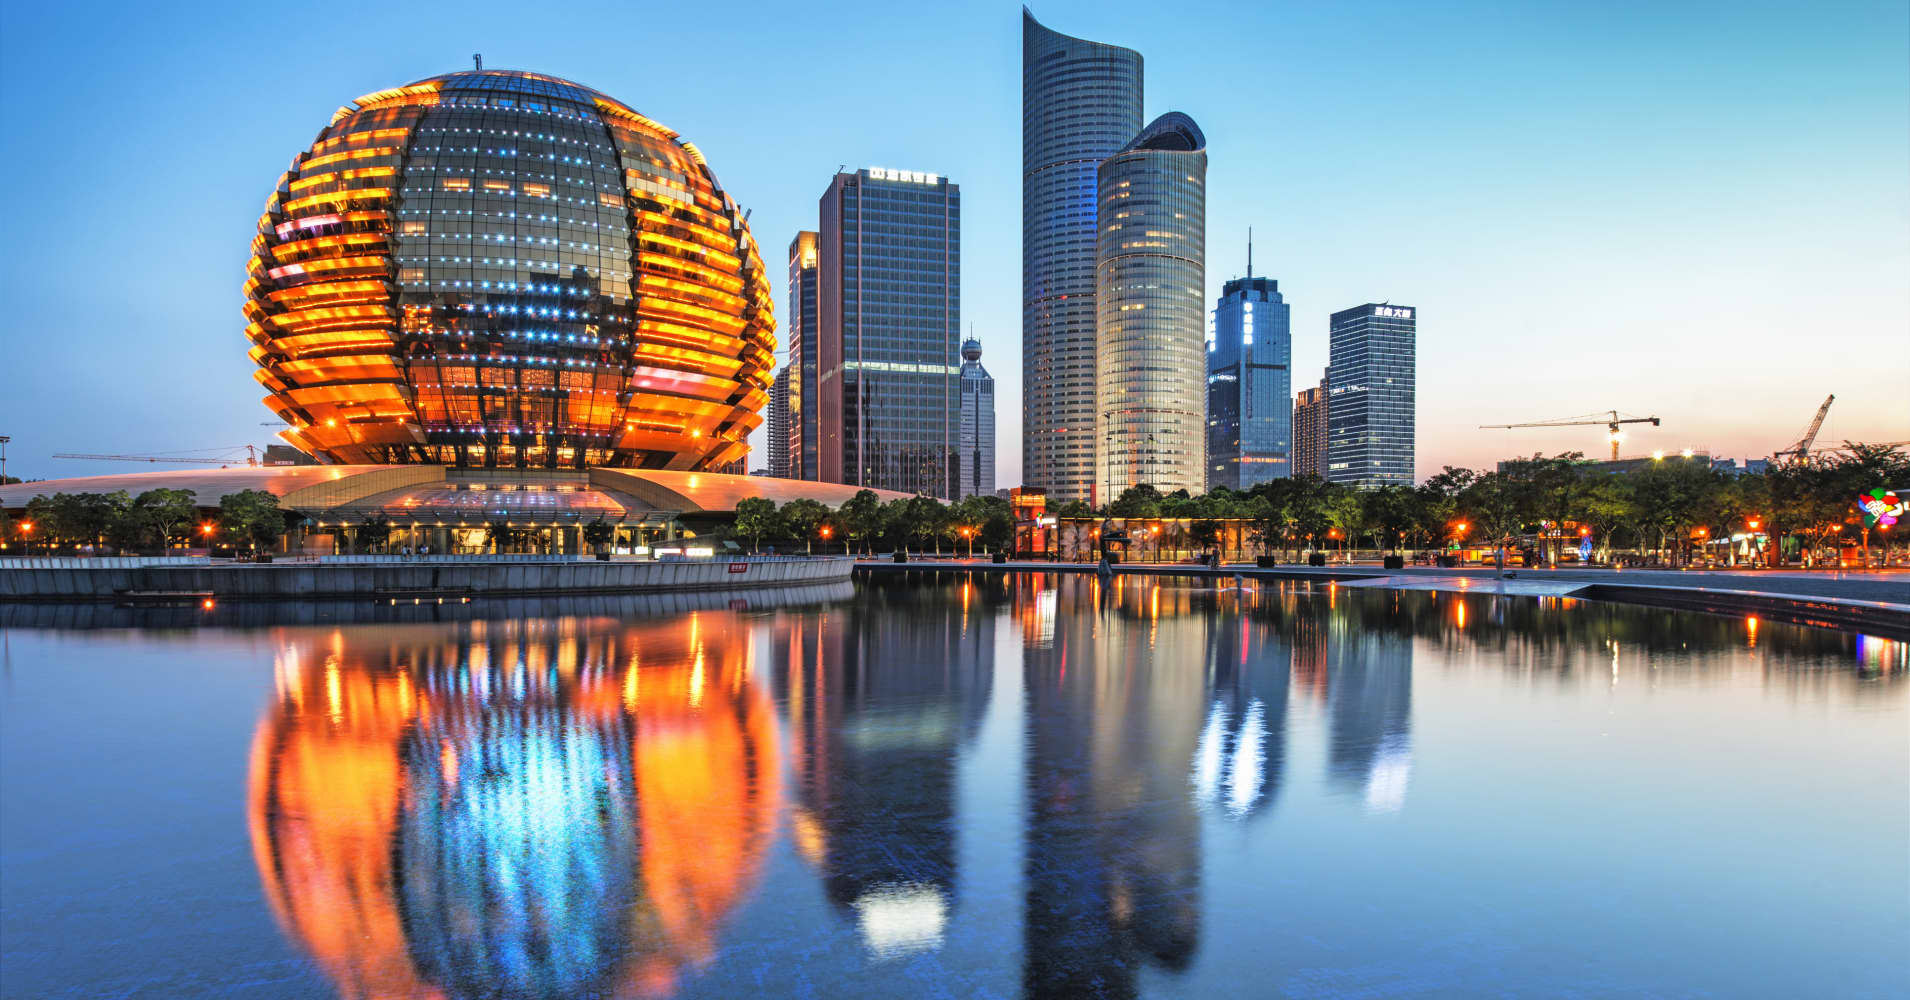 Top 10 Fastest Growing Cities: Hangzhou